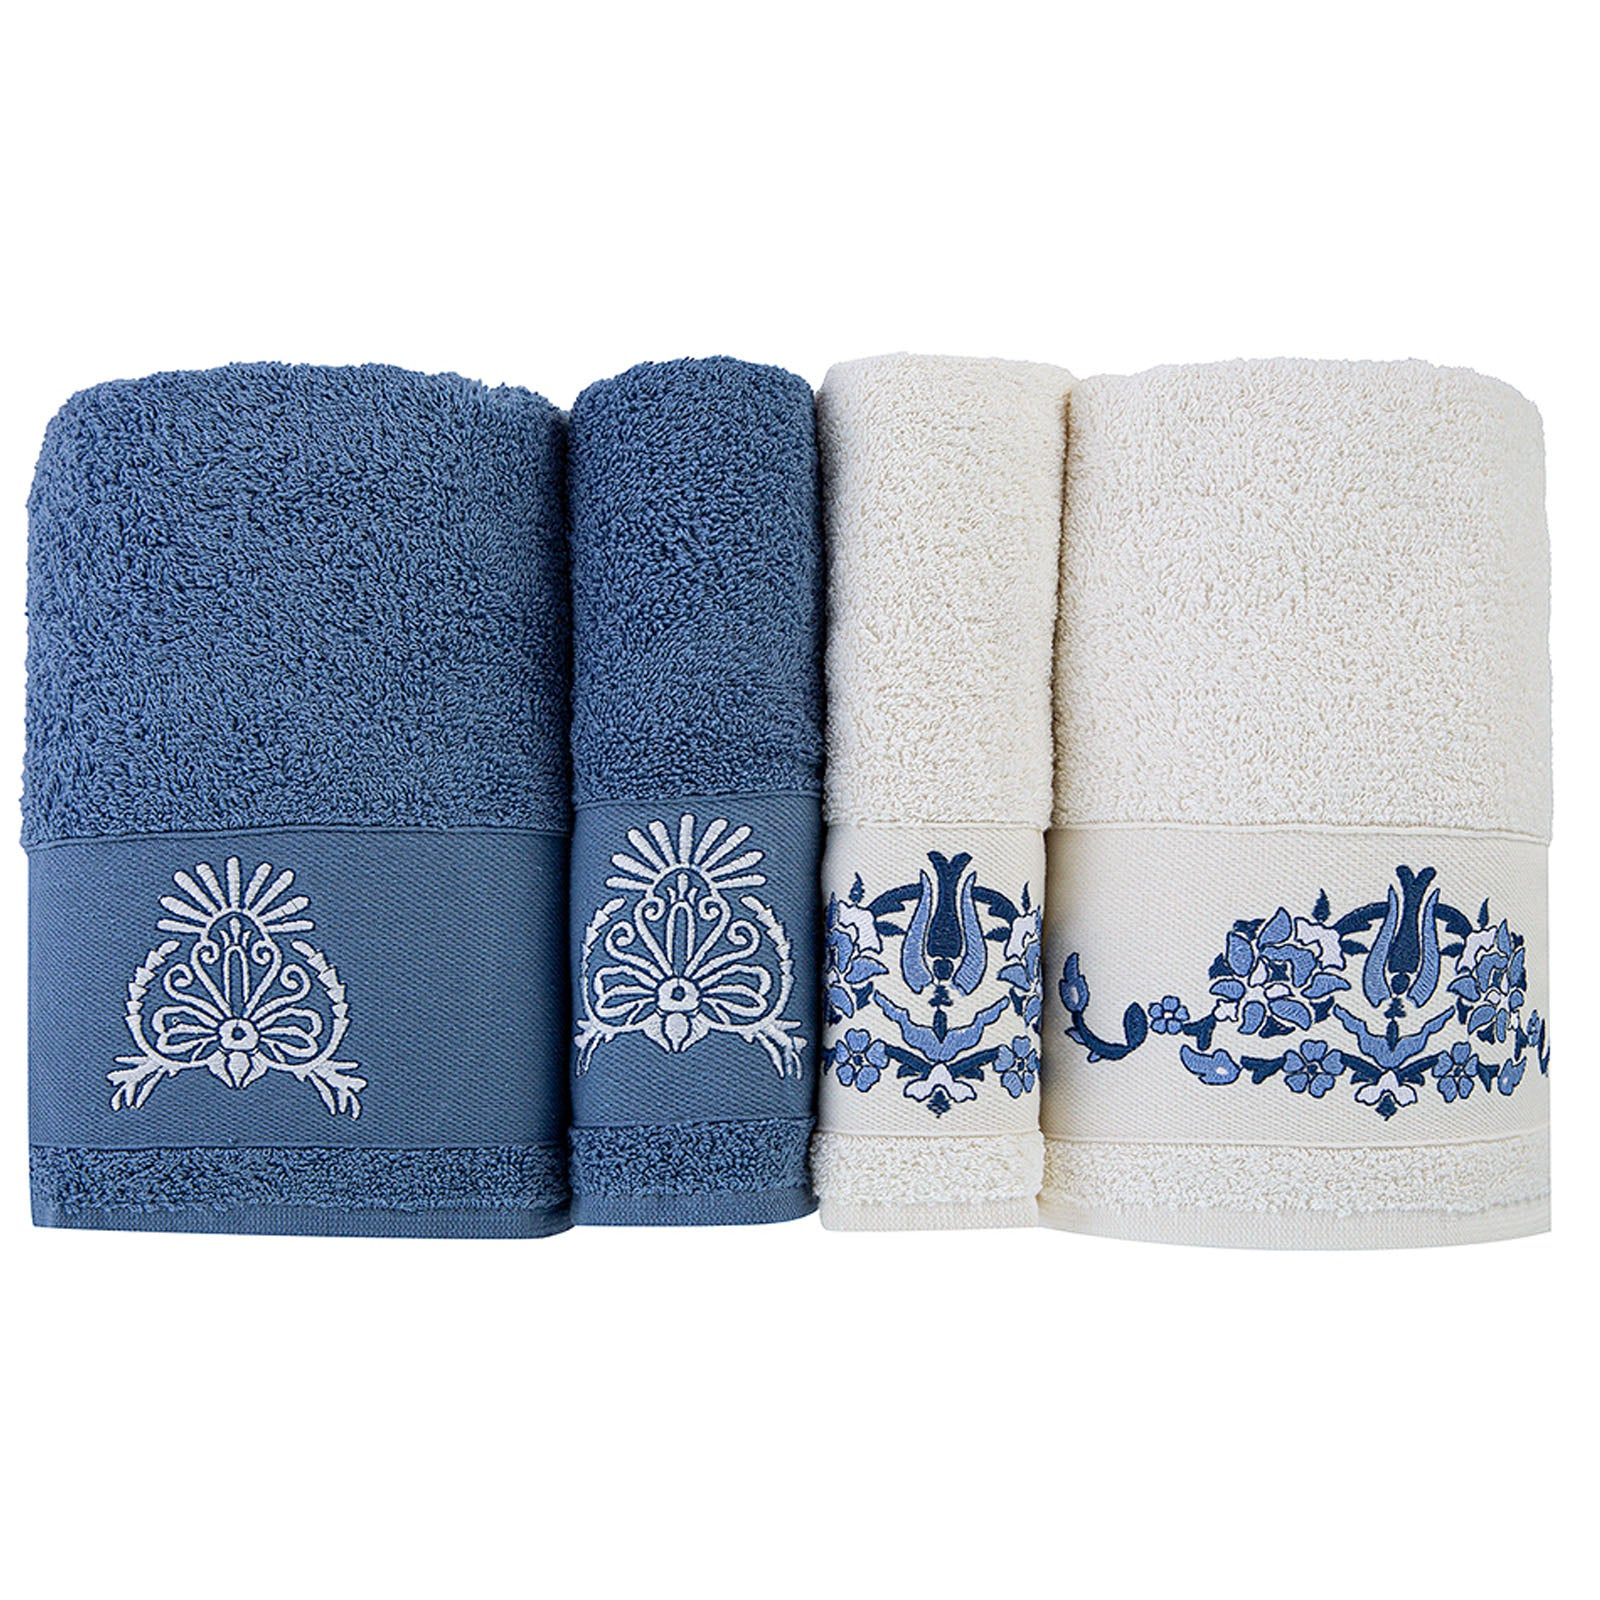 PRE-ORDER 30 DAYS DELIVERY Karaca Home Levni Blue White Family Turkish Bath Set 200.15.01.0114